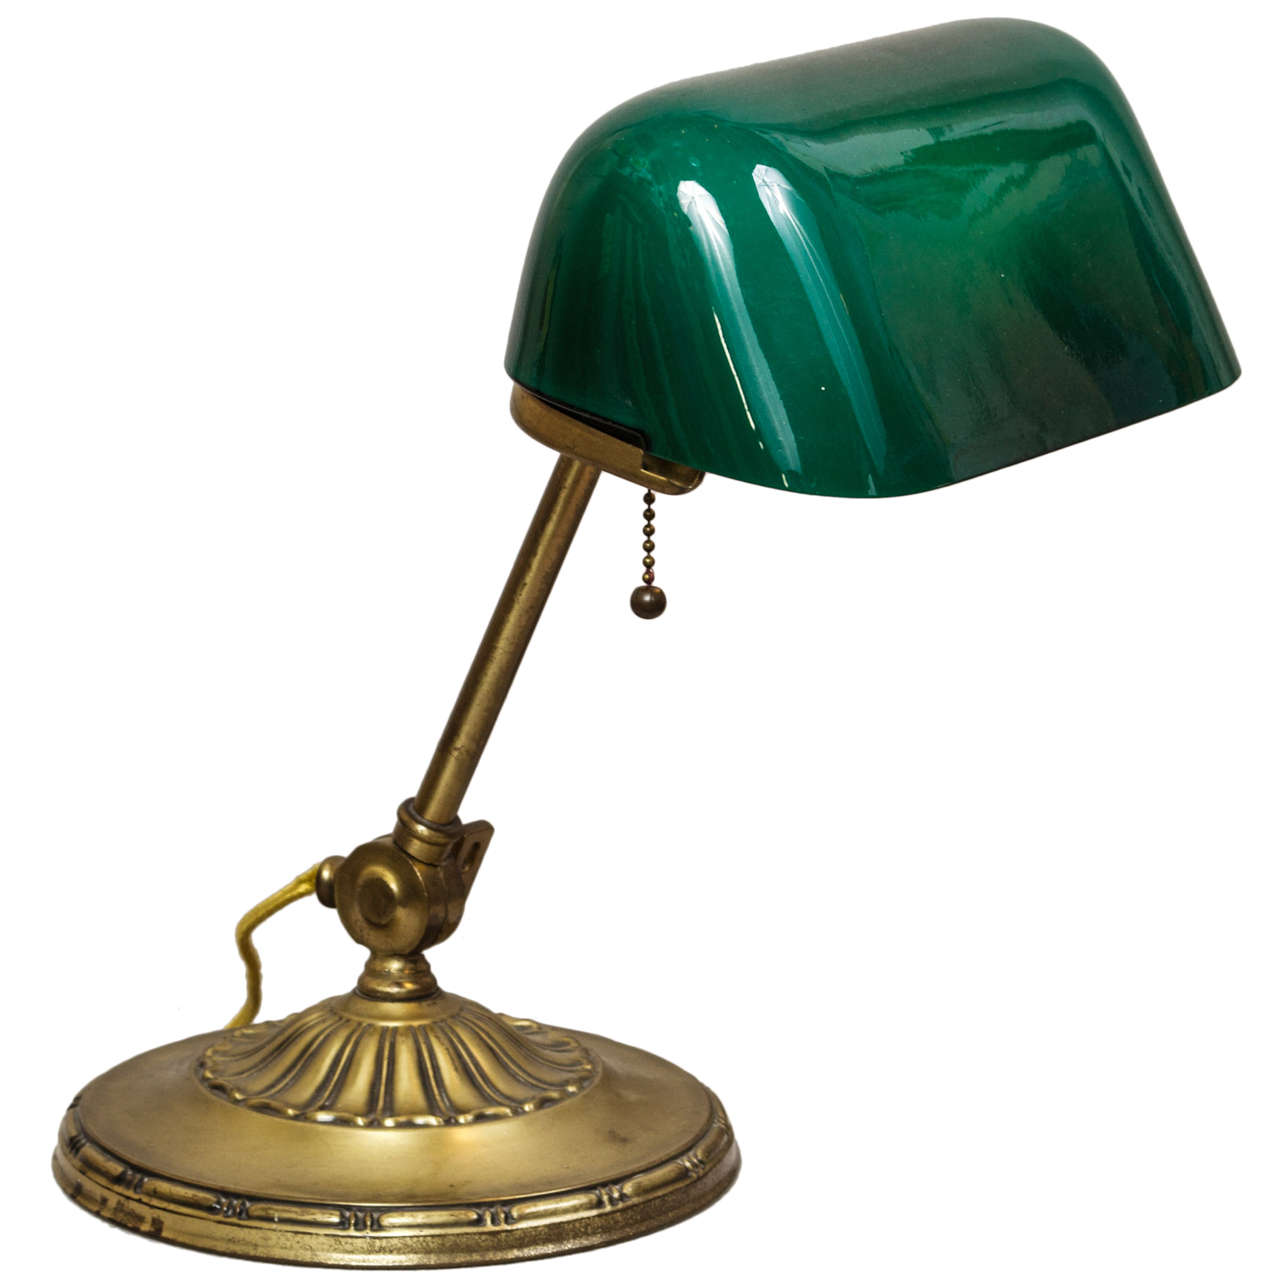 banker 39 s lamp with green cased glass shade. Black Bedroom Furniture Sets. Home Design Ideas